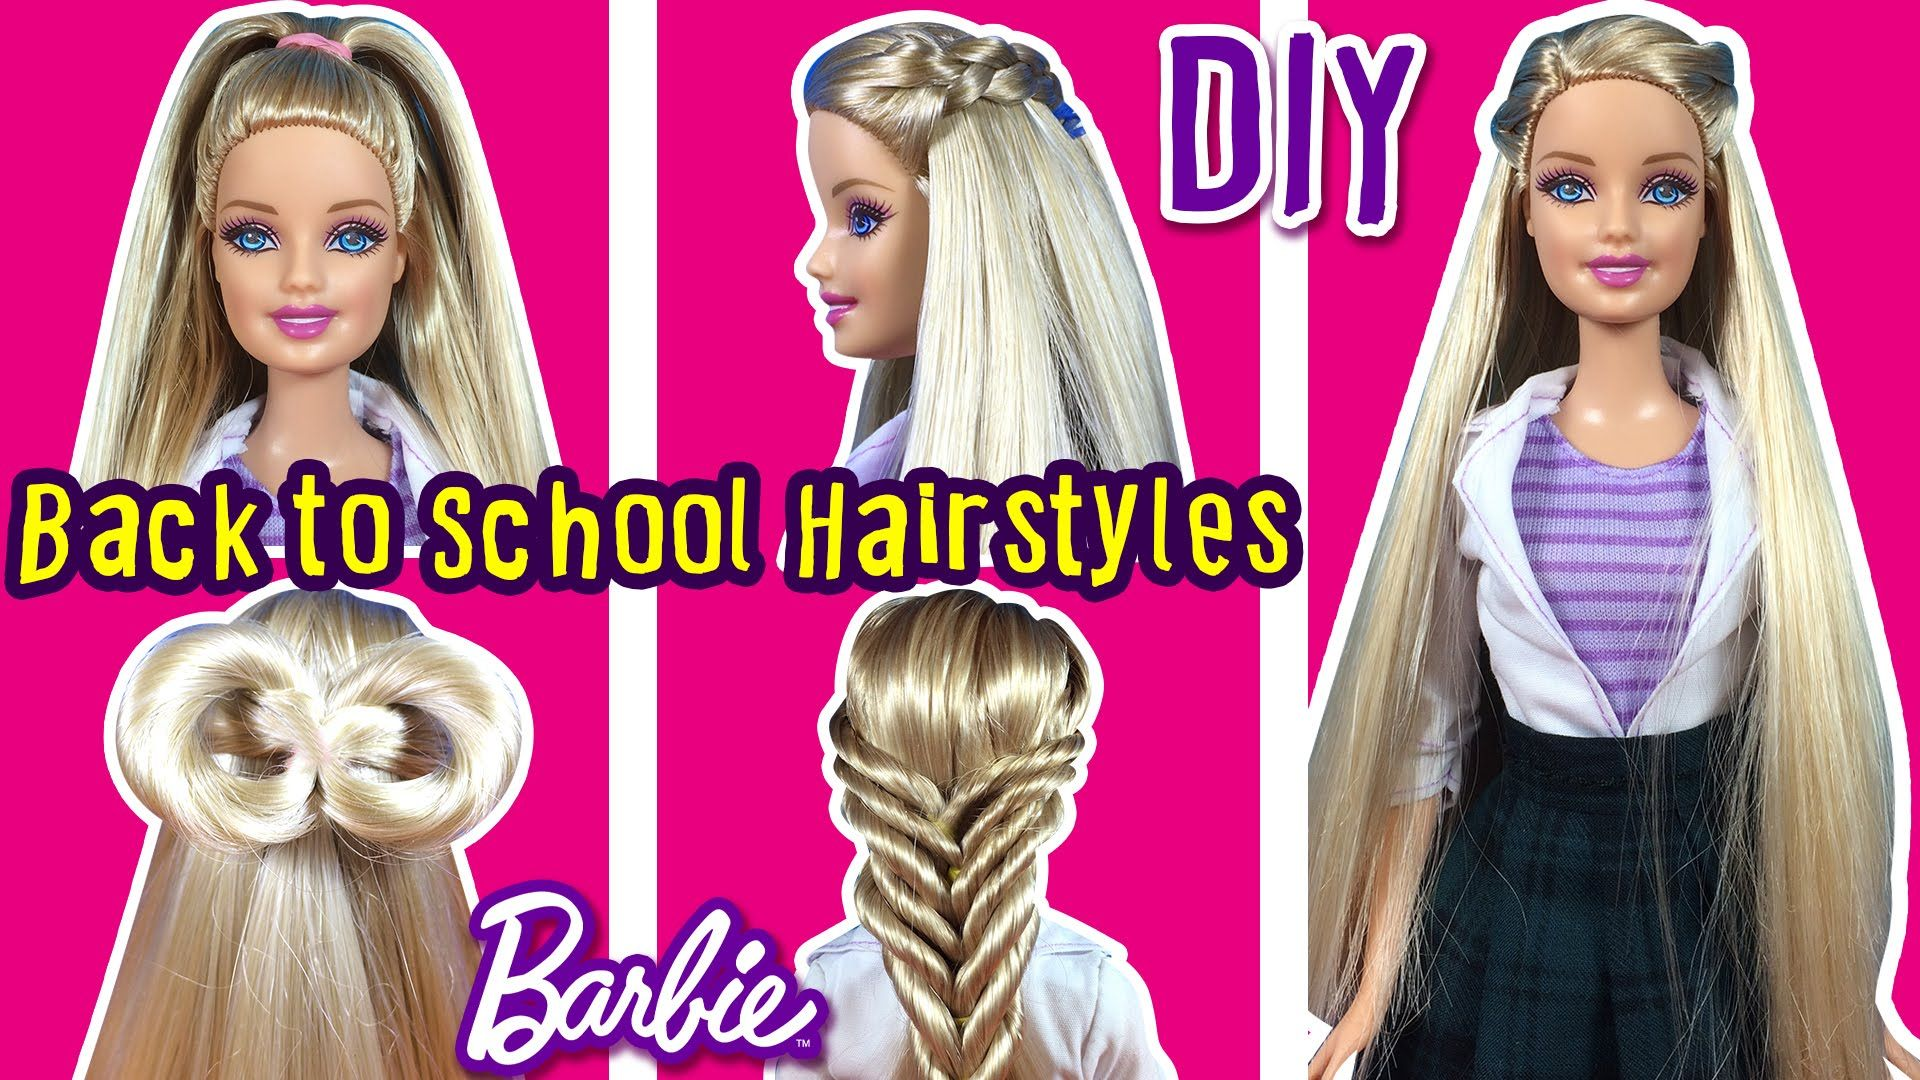 Back To School Hairstyles of Barbie Doll - DIY Barbie Hair